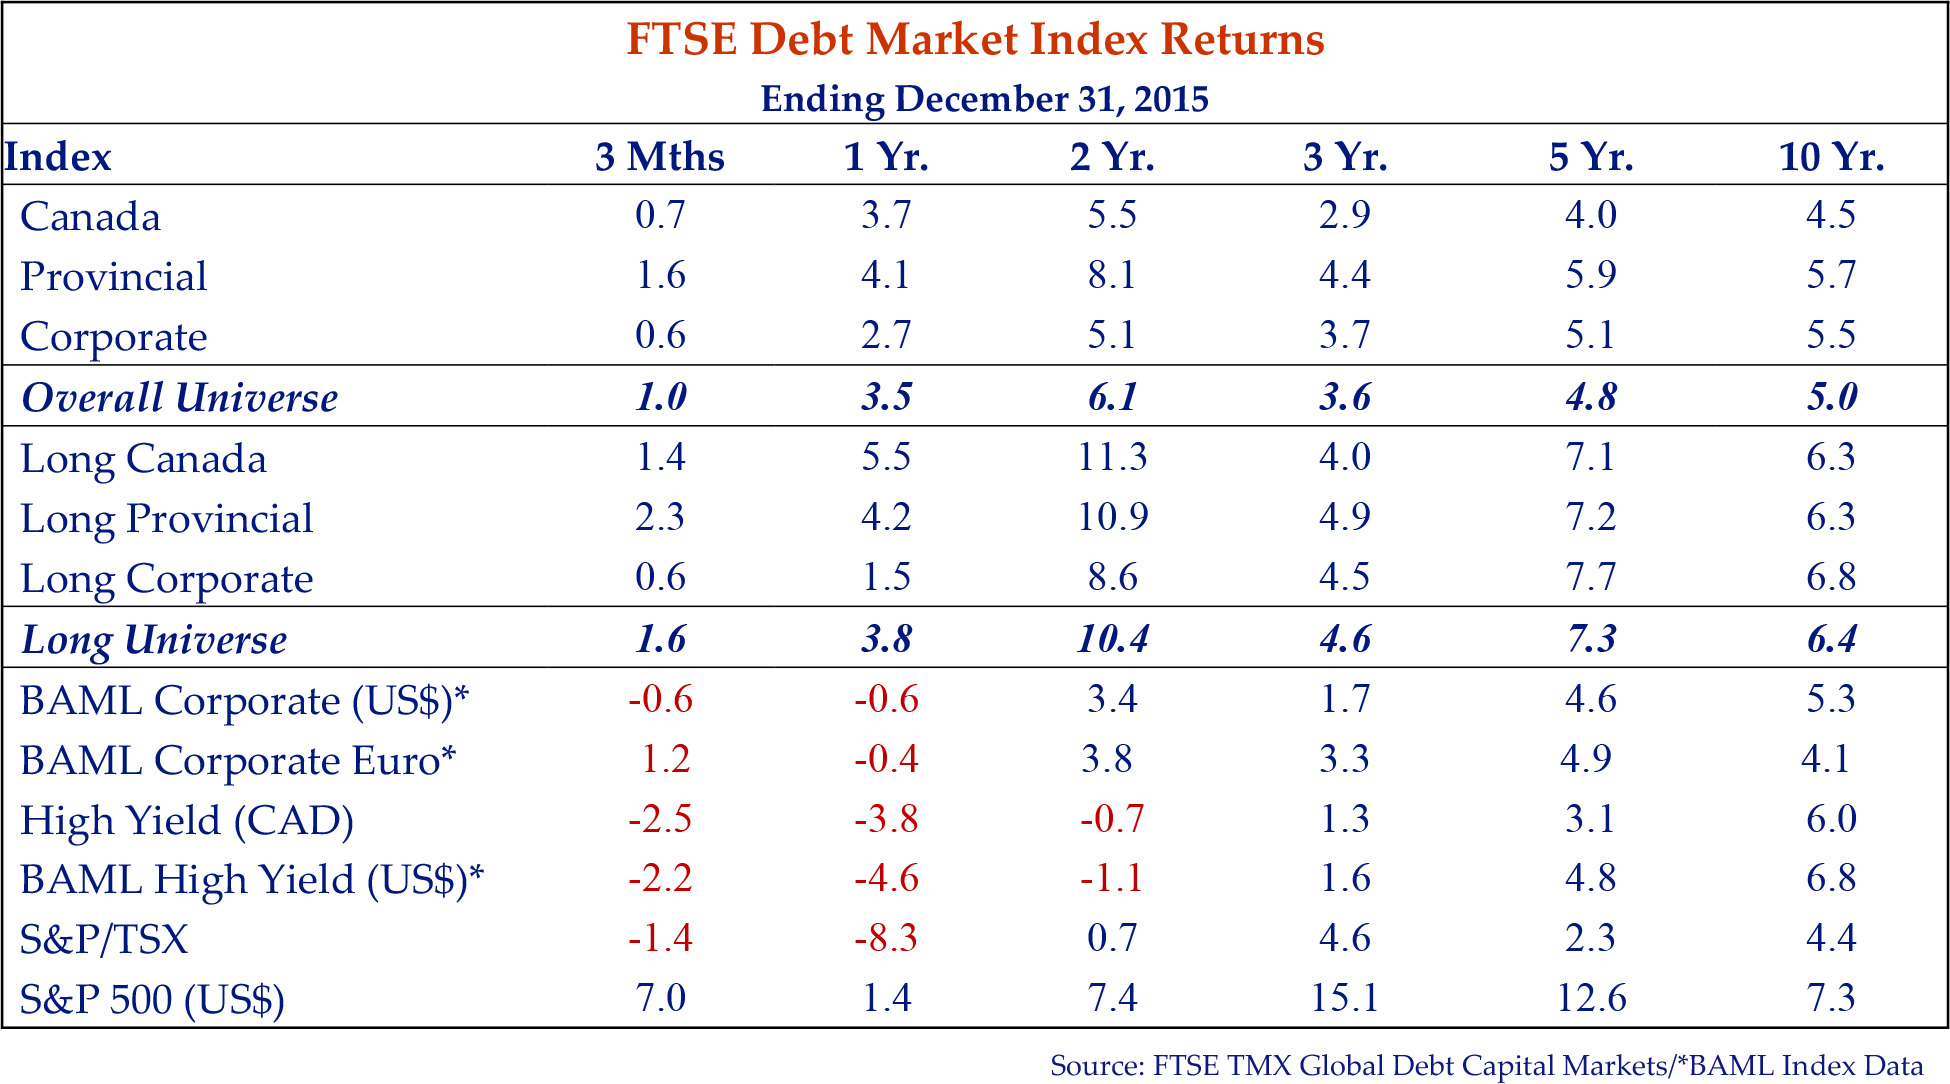 table showing the FTSE debt market index returns for the period ending December 31, 2015.